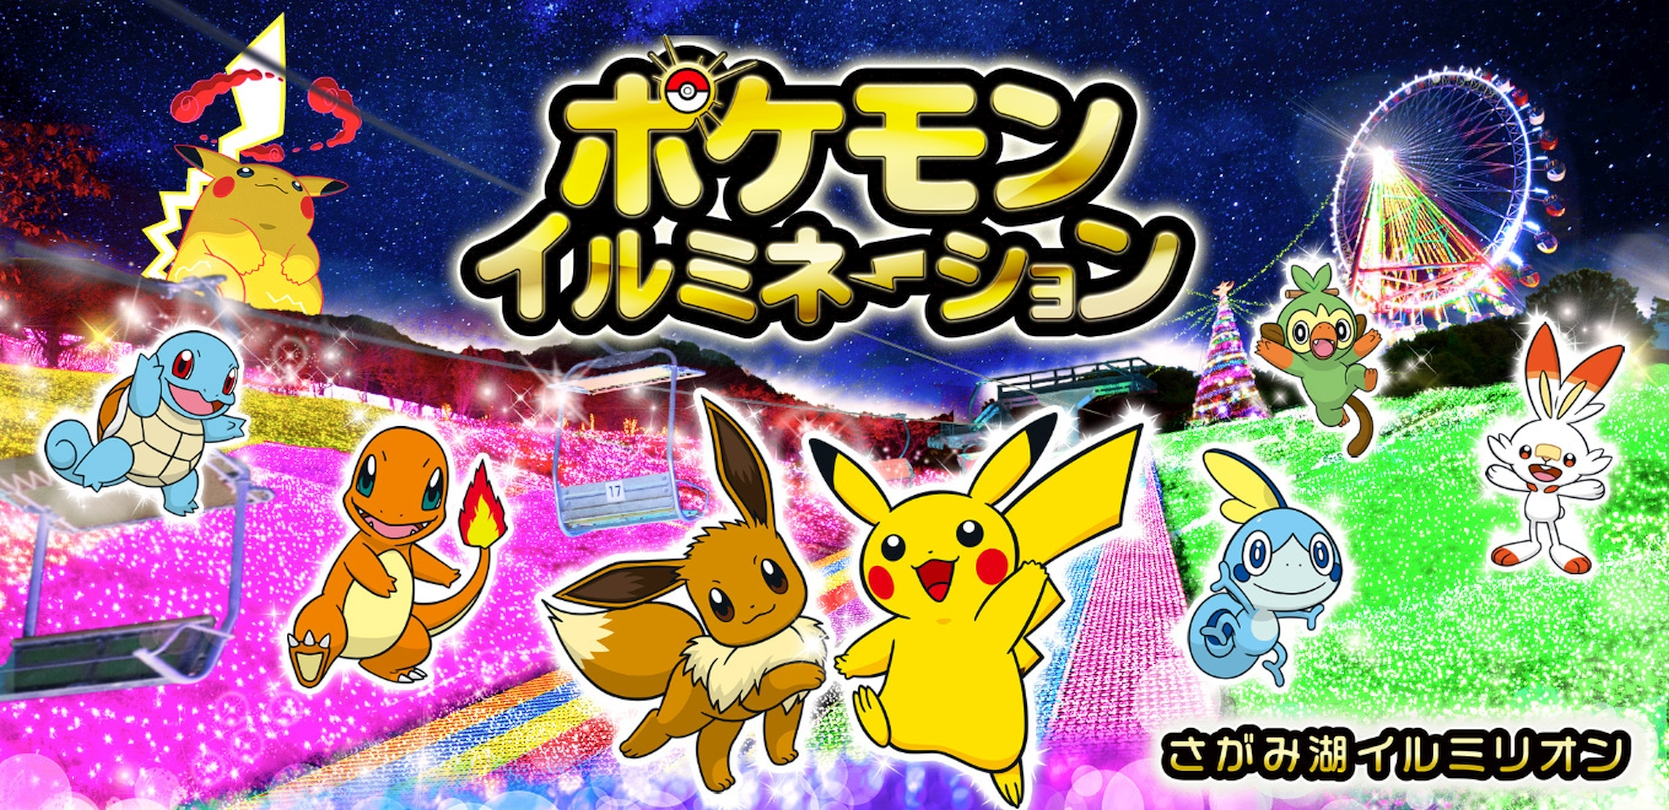 Pokémon Illumination Event Returns In Japan To Light Up Fans' Lives